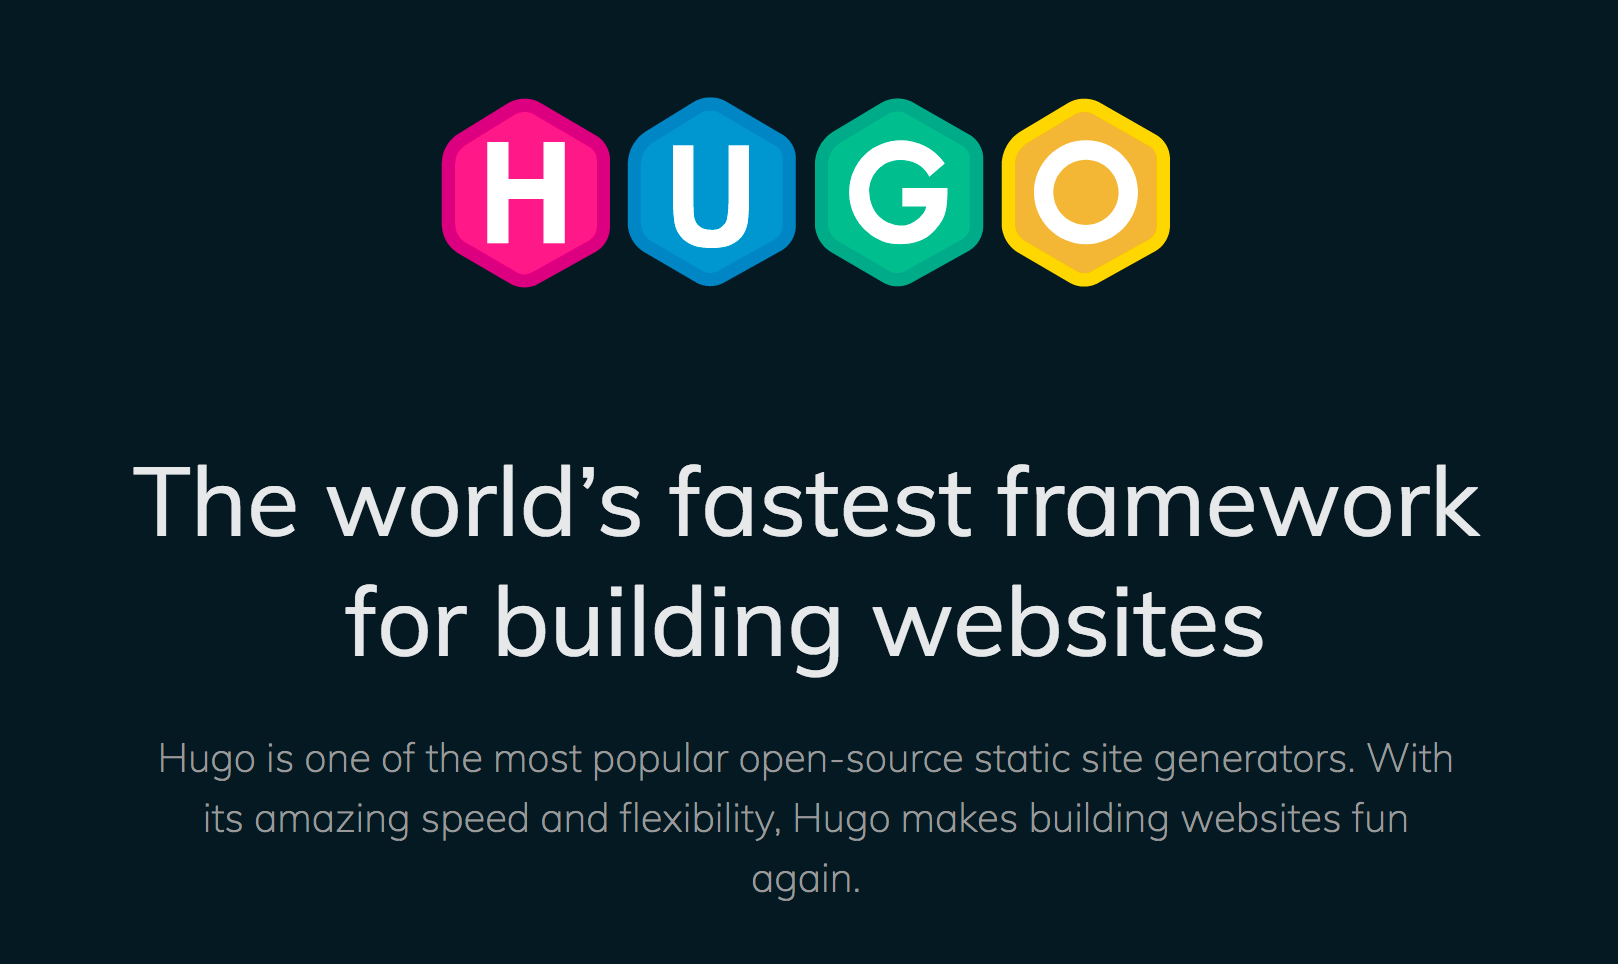 Digest Nushackers Open Short Circuit Tracer Hugo Boasted About Its Speed And It Proved Itself When Would Take Less Than A Millisecond To Rebuild Our 500 Page Blog Was An Astounding Change